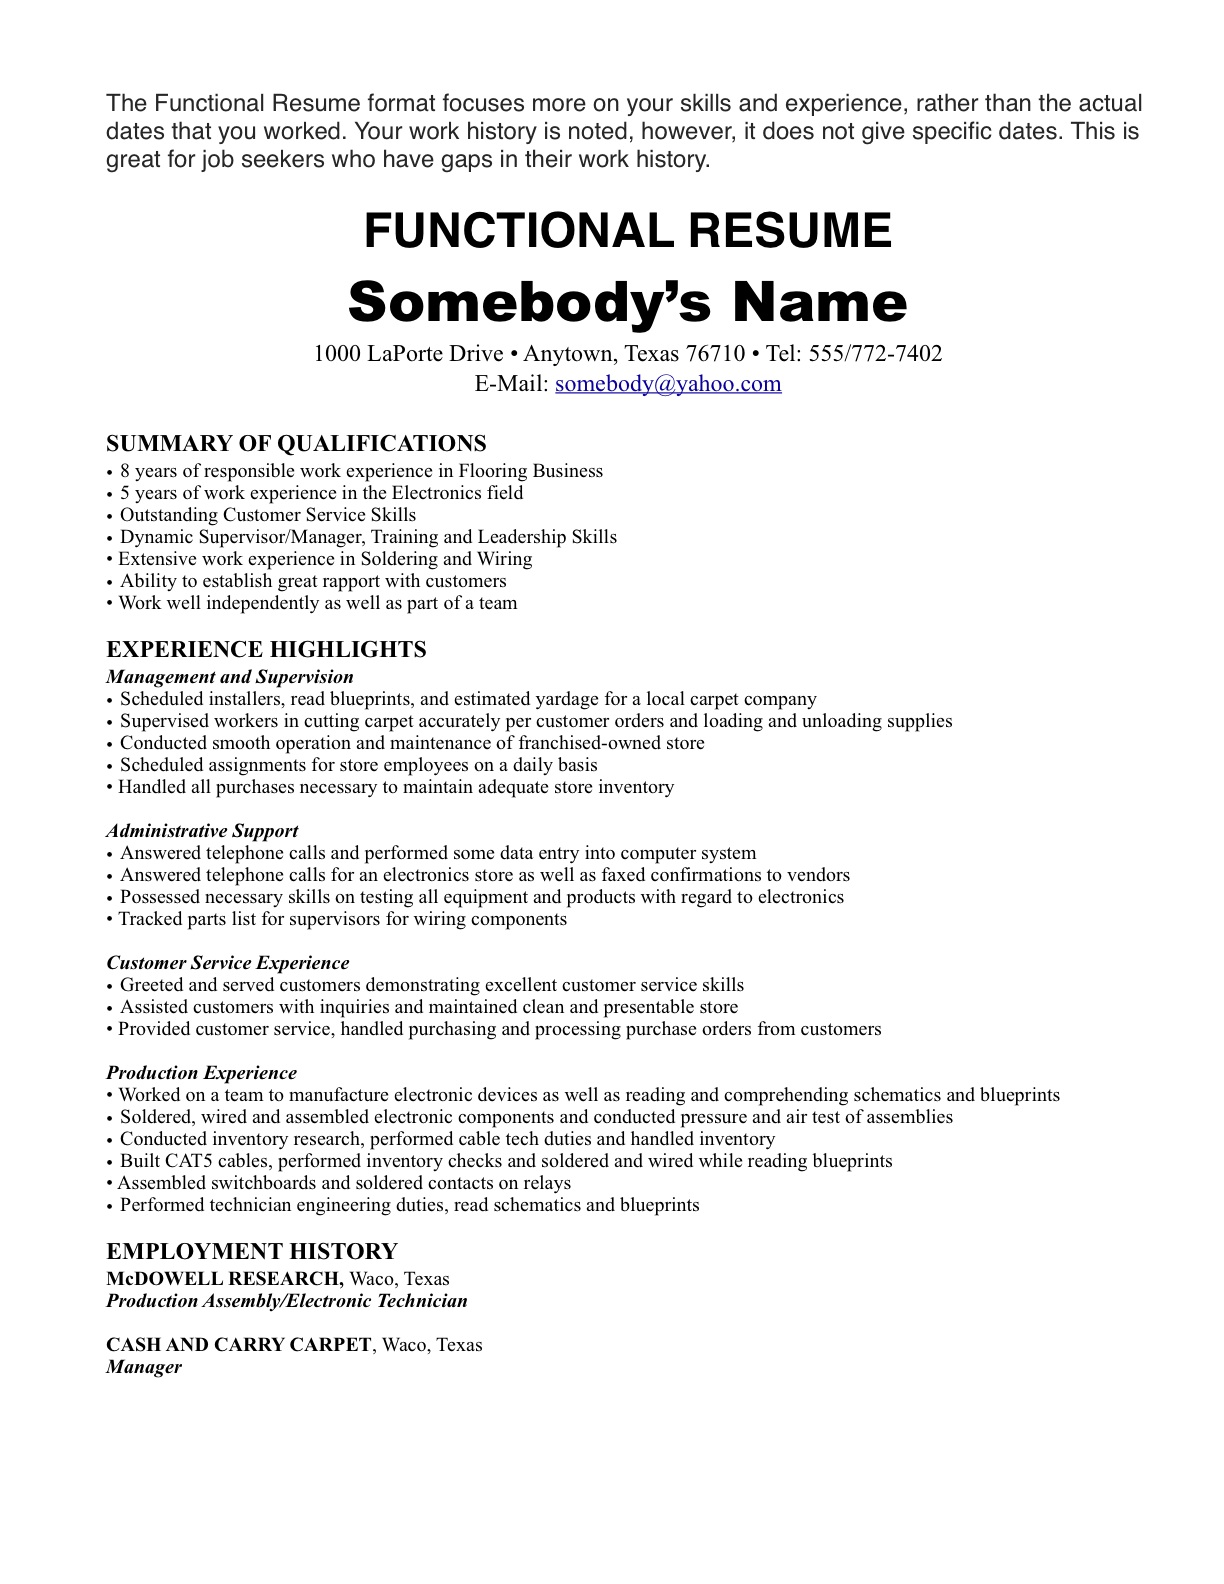 Exceptional Resume Examples With No Work History On Work History Resume Example